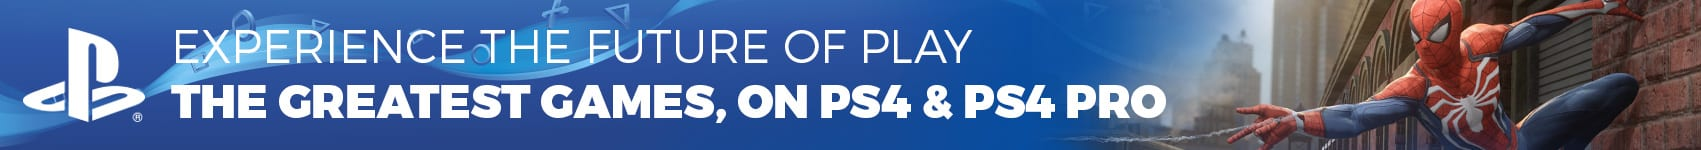 PlayStation 4 The greatest game on ps4 and ps4 pro